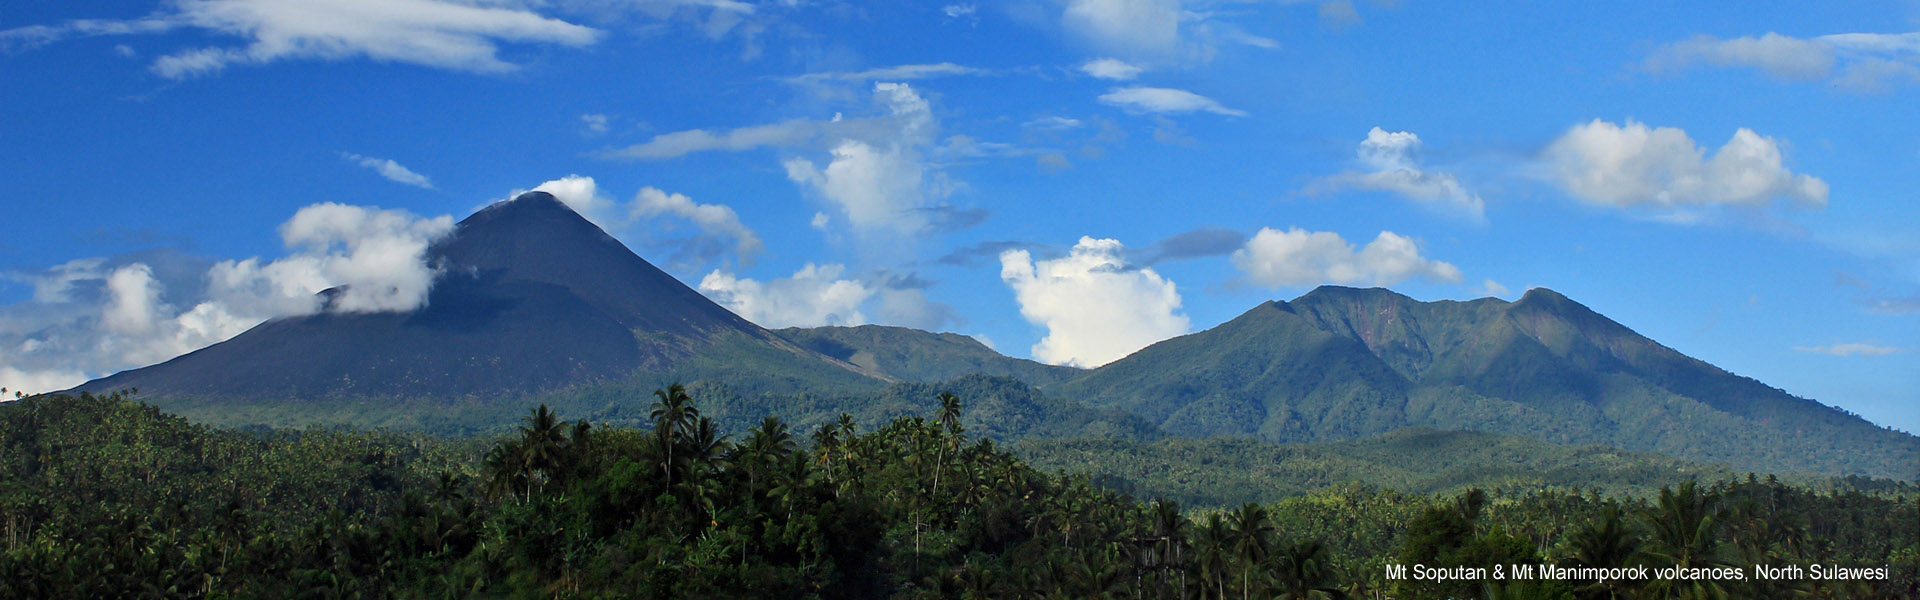 Mt Soputan and Mt Manimporok volcanoes, North Sulawesi